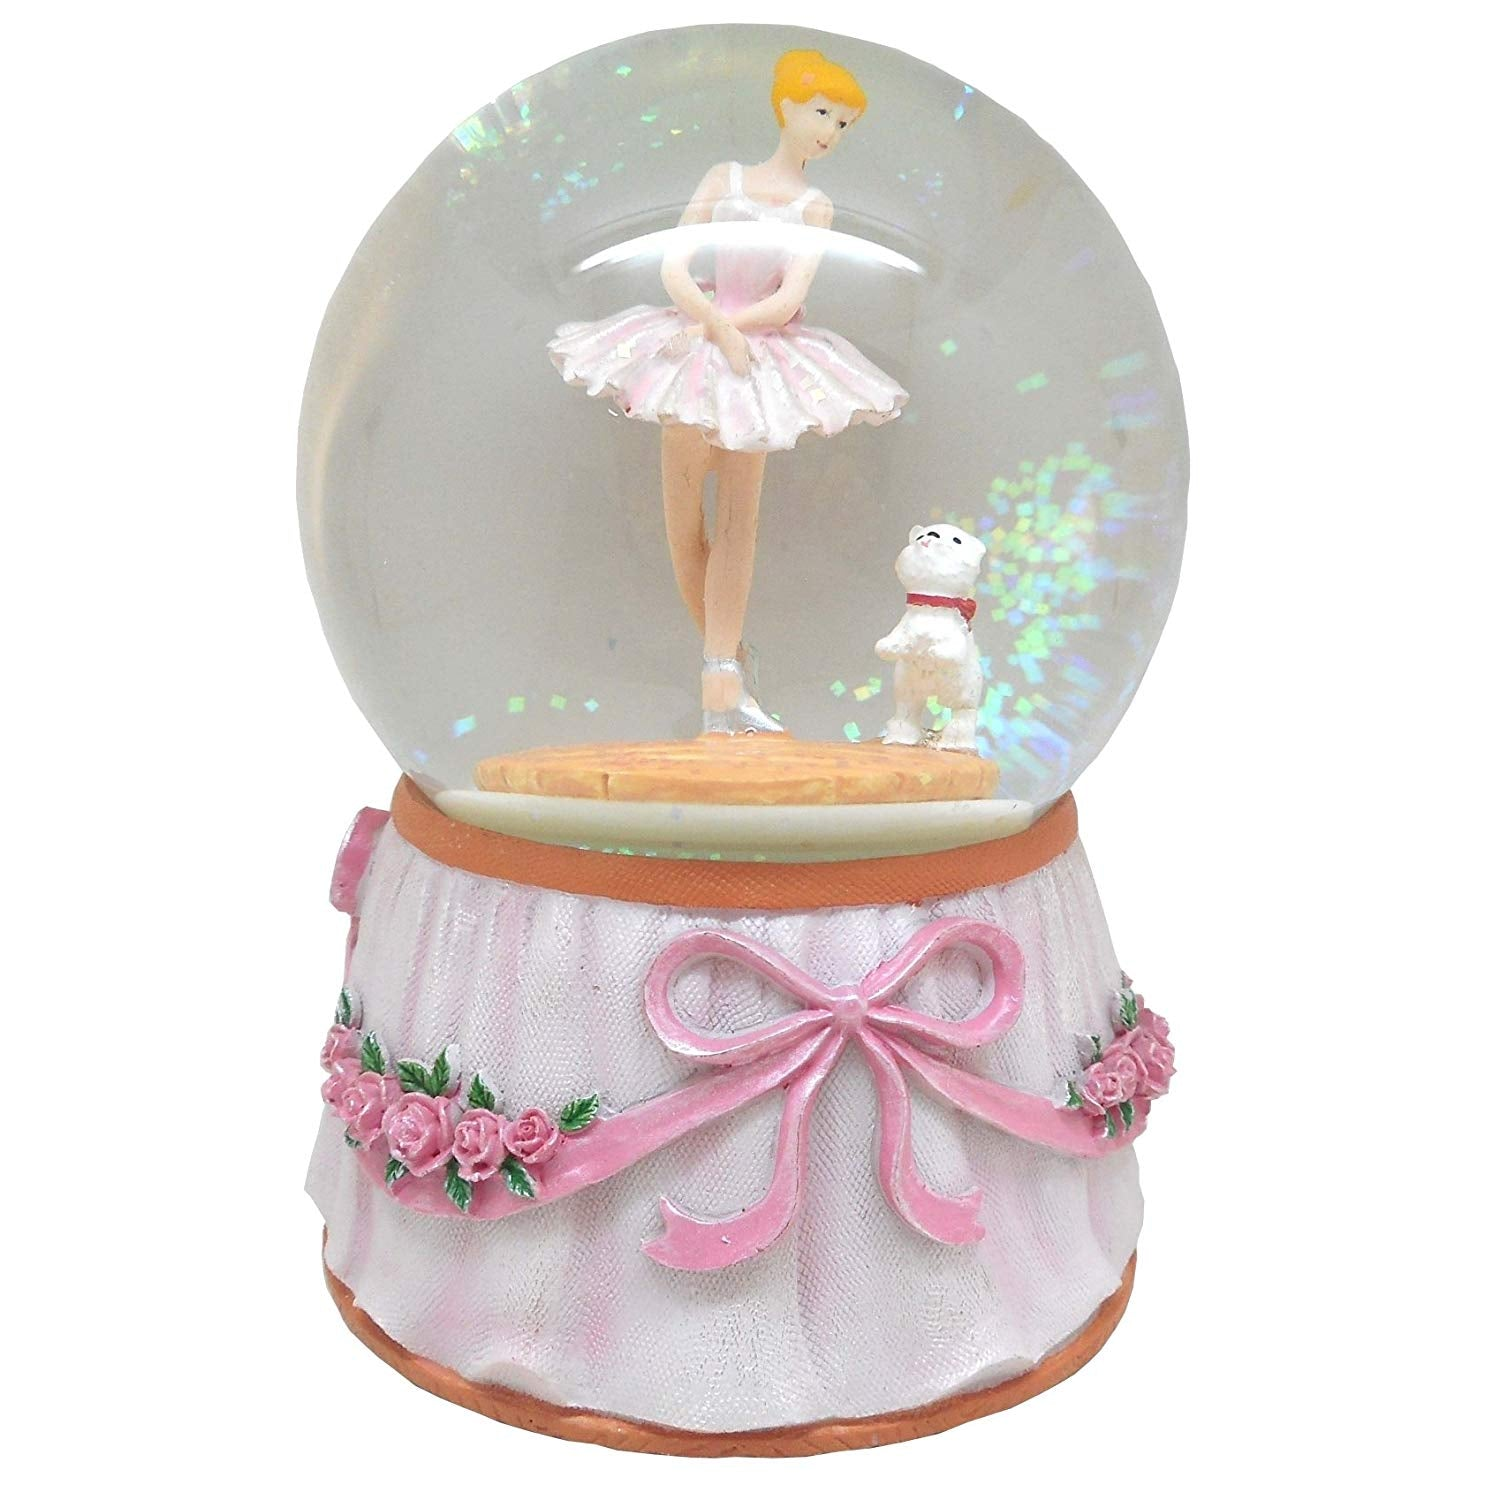 Lightahead Musical Ballerina with baby bear in a 100MM Polyresin Water Snow Globe Ball with Inside Figurine Rotating playing music